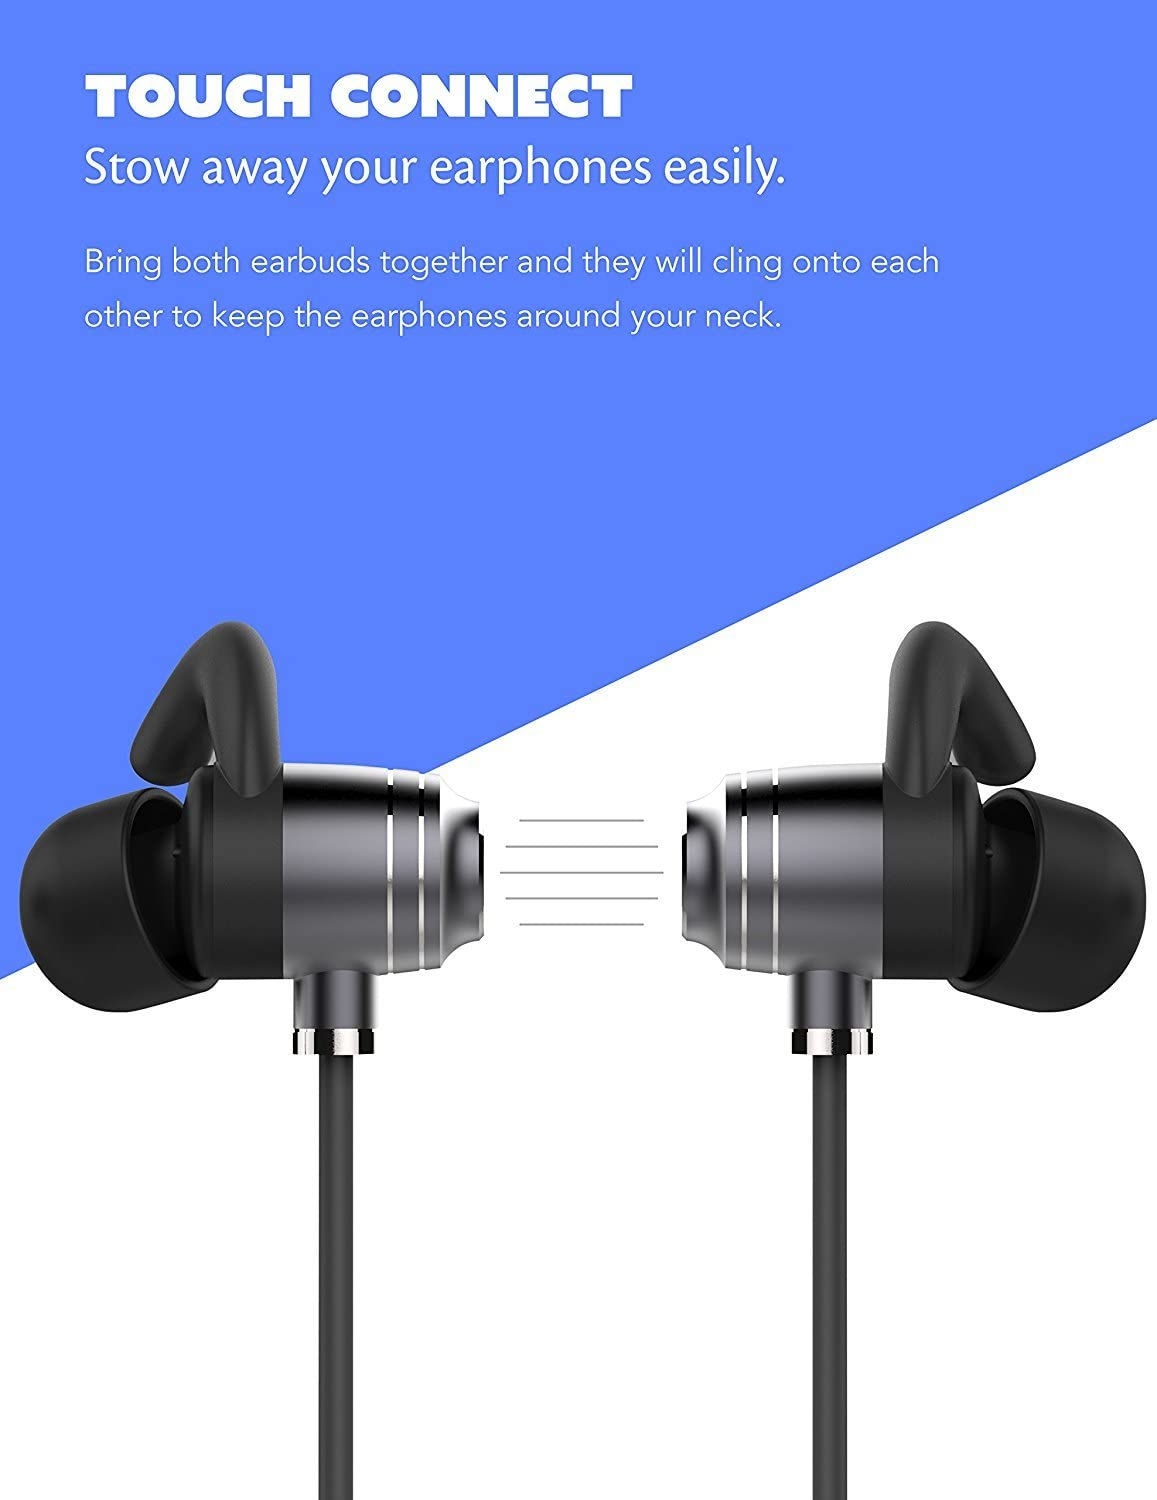 Boxgear LG Optimus G E975 Bluetooth Headset in-Ear Running Earbuds IPX4 Waterproof with Mic Stereo Earphones CVC 6.0 Noise Cancellation Works with Samsung,Google Pixel,LG Apple